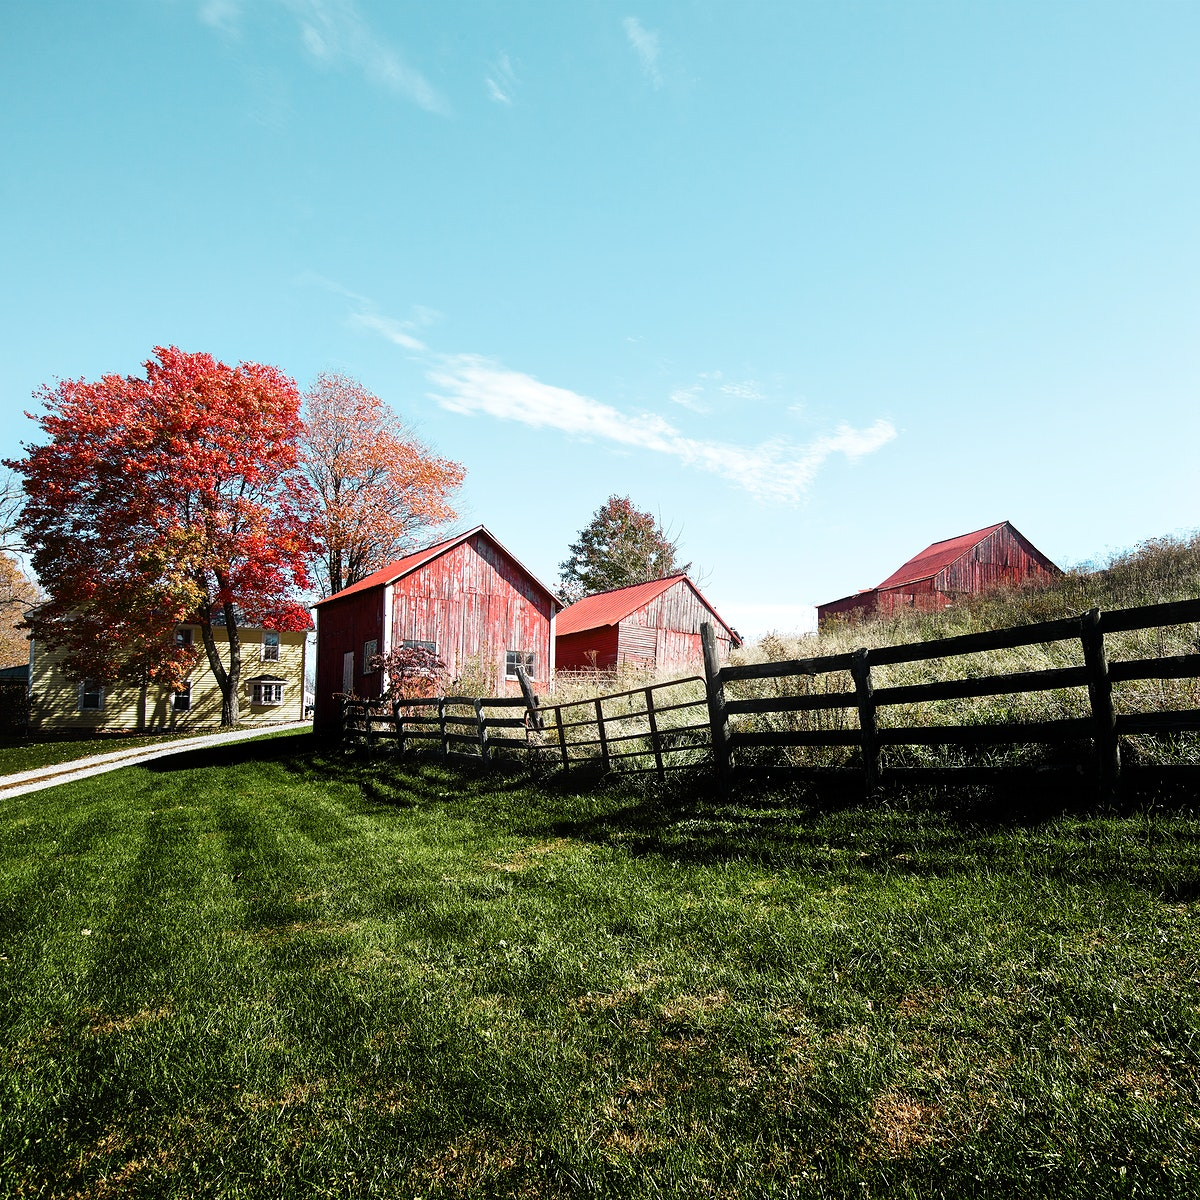 Grouping of small barns in this Monroe County, West Virginia, autumnal rural scene. Original image from Carol M.…